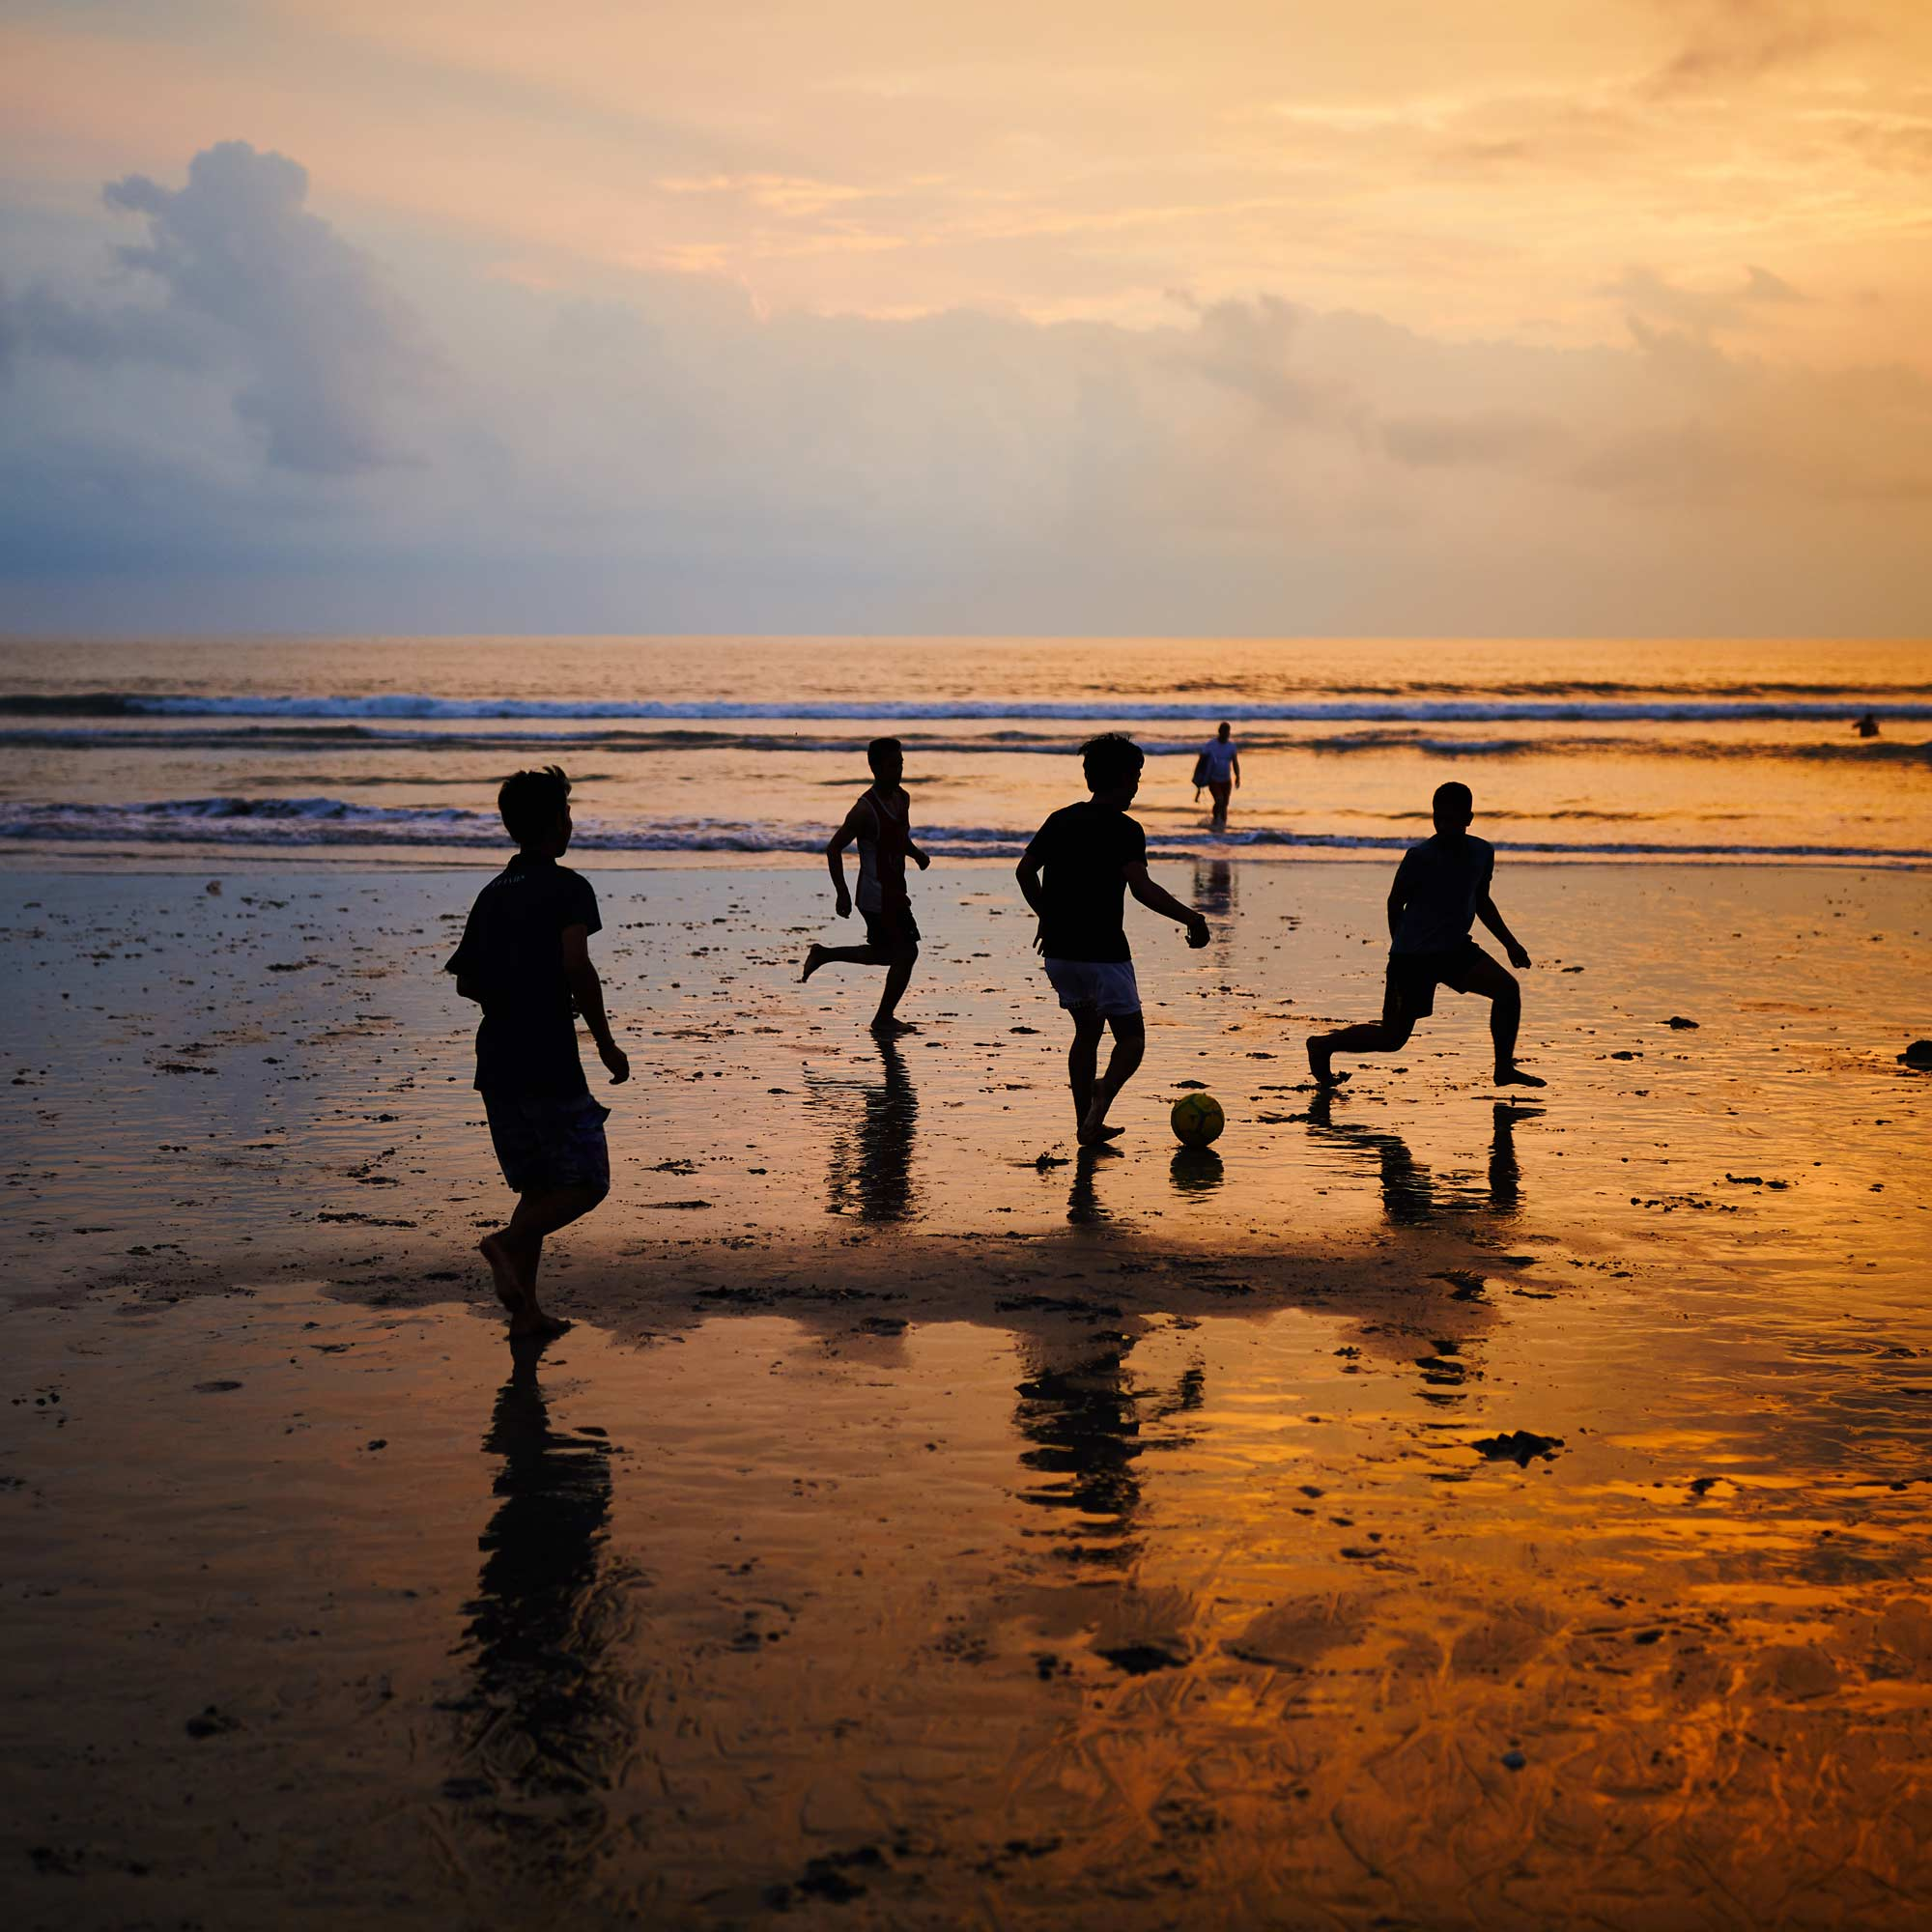 Boys playing soccer on a beach during sunset in Bali, Indonesia | Travel Photography